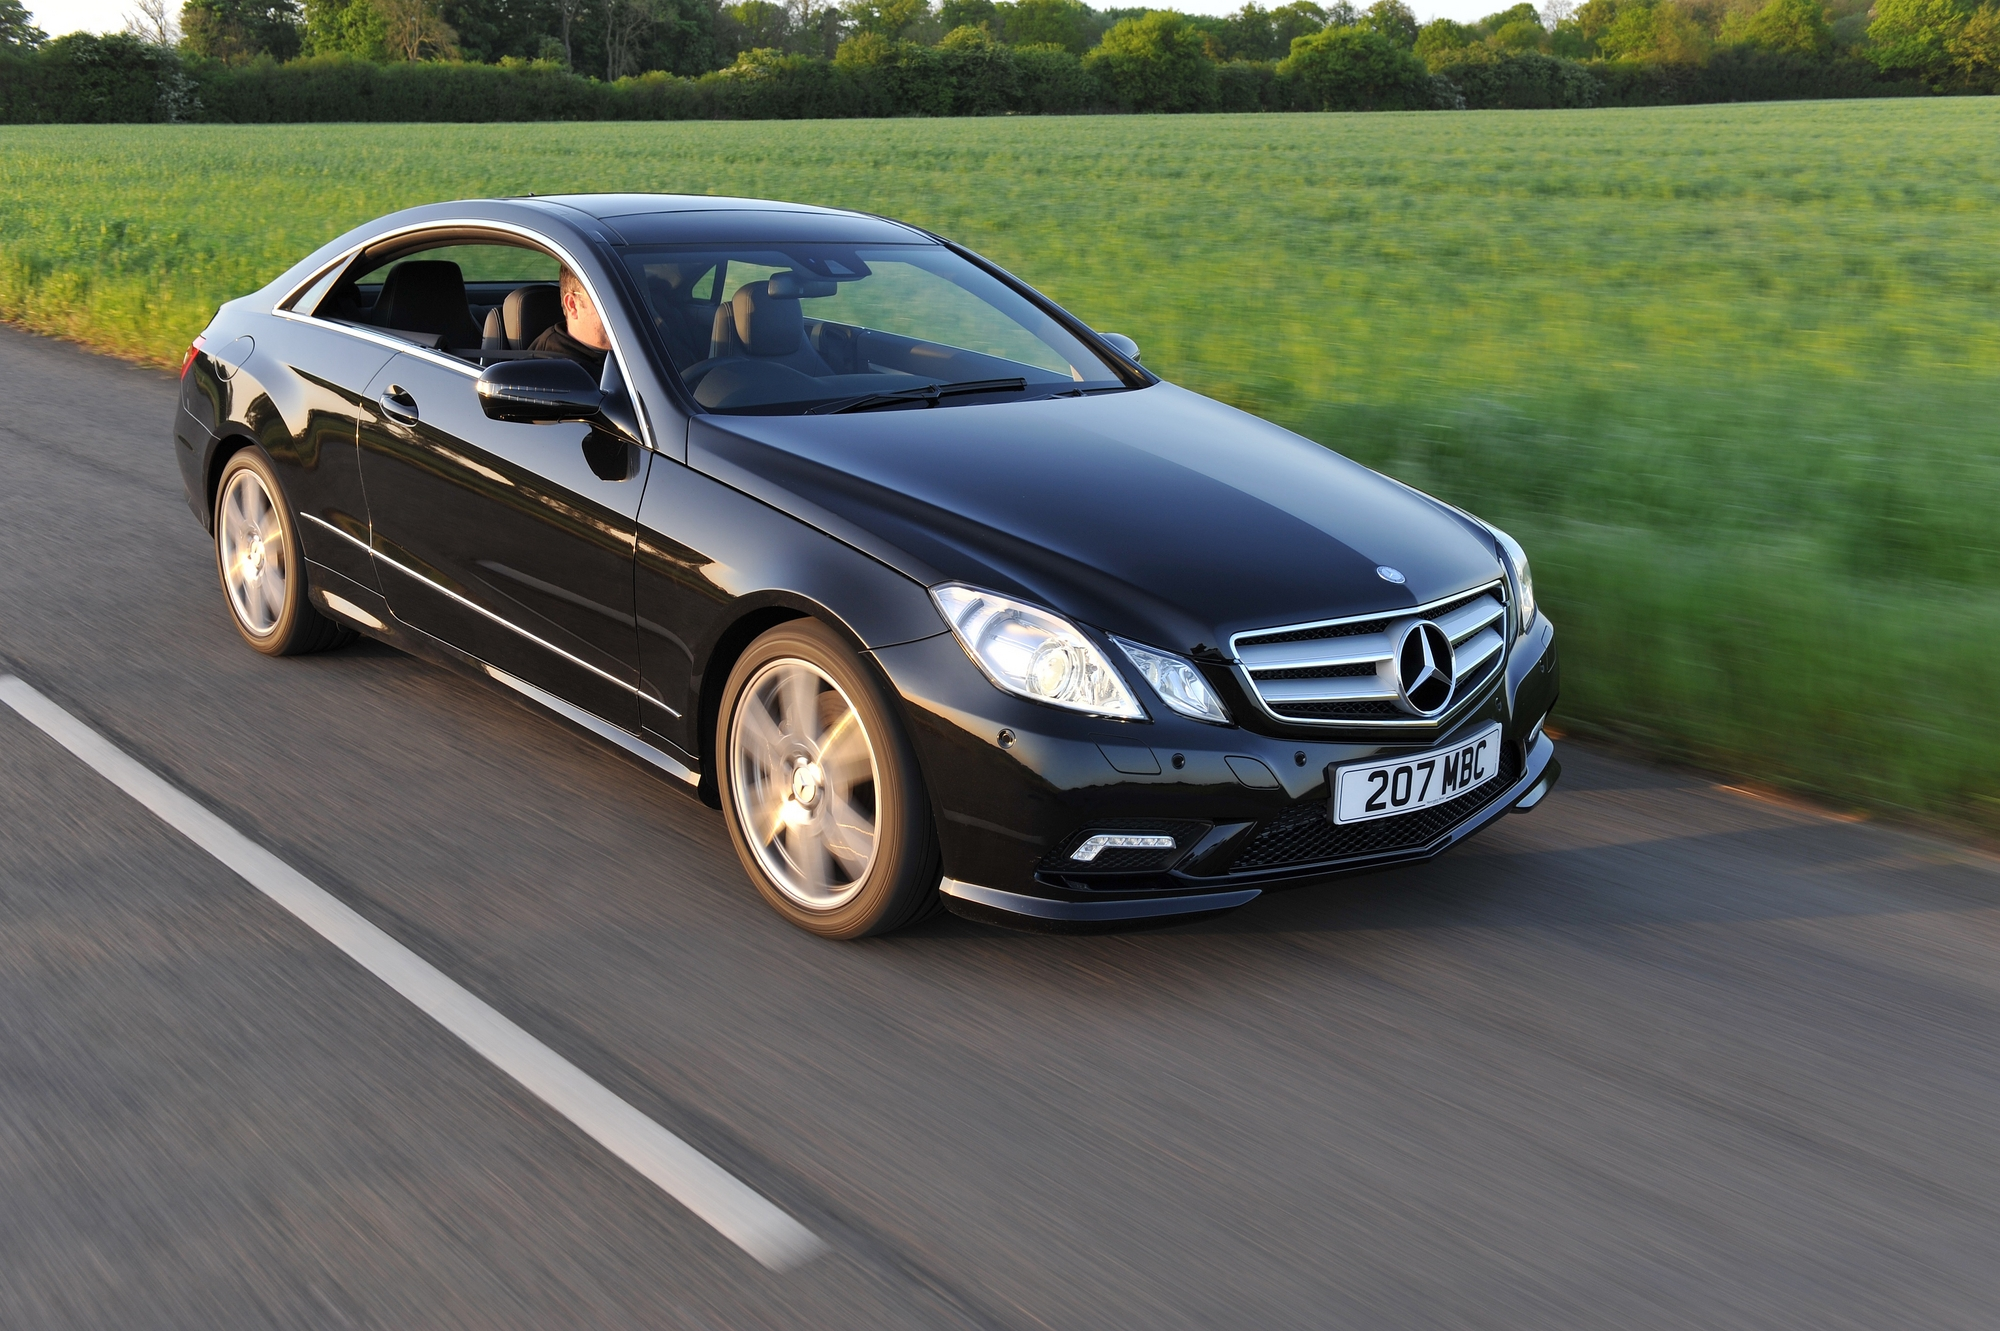 Watch also Mercedes E Class 2015 Diesel E250 Cdi Amg Picture 10225119 in addition Mercedes E63 Amg Facelift And Power Boost 2013 Full Details also W212 Bluetech Diesel E Class E250 Cdi Engine further 1125968021. on mercedes e250 cdi